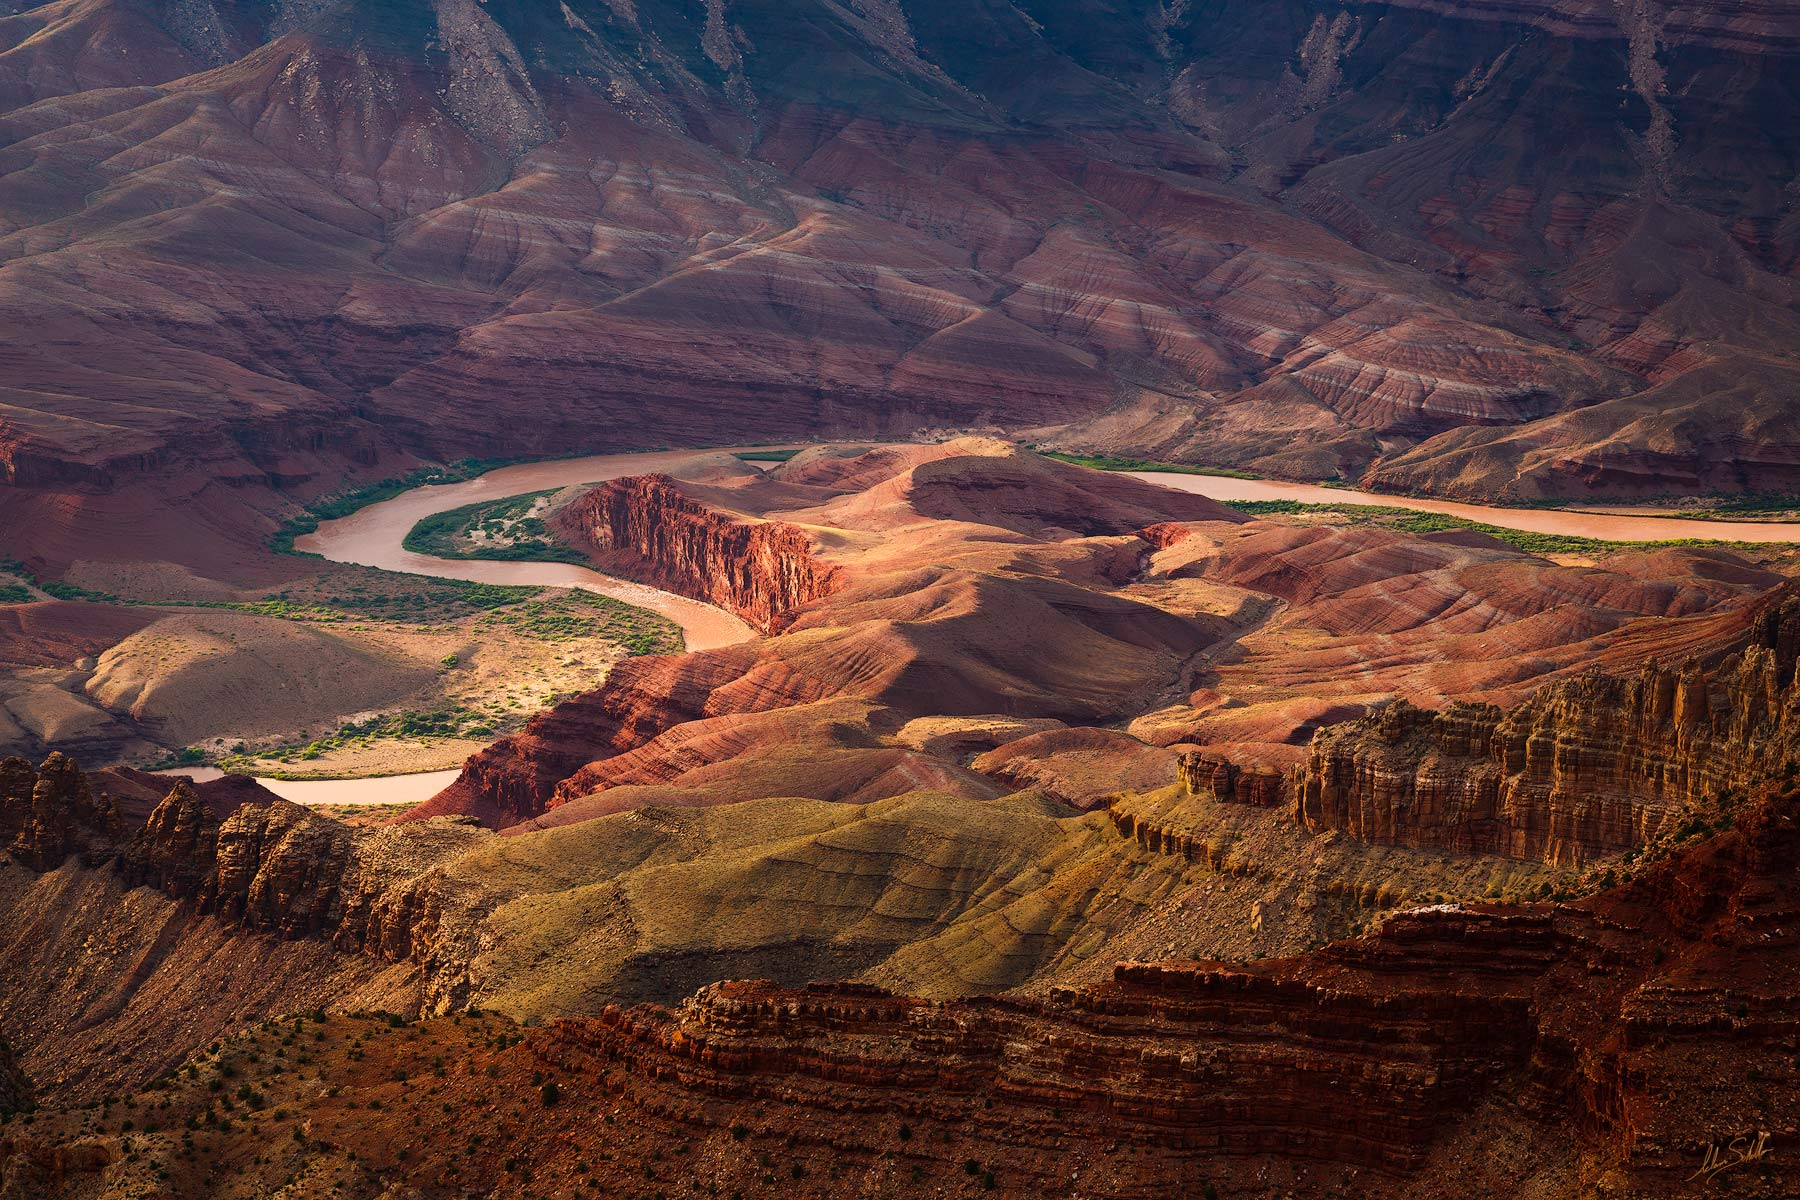 Arizona, Colorado River, Grand Canyon, National Park, South Rim, Unkar Delta, Lipan Point, photo